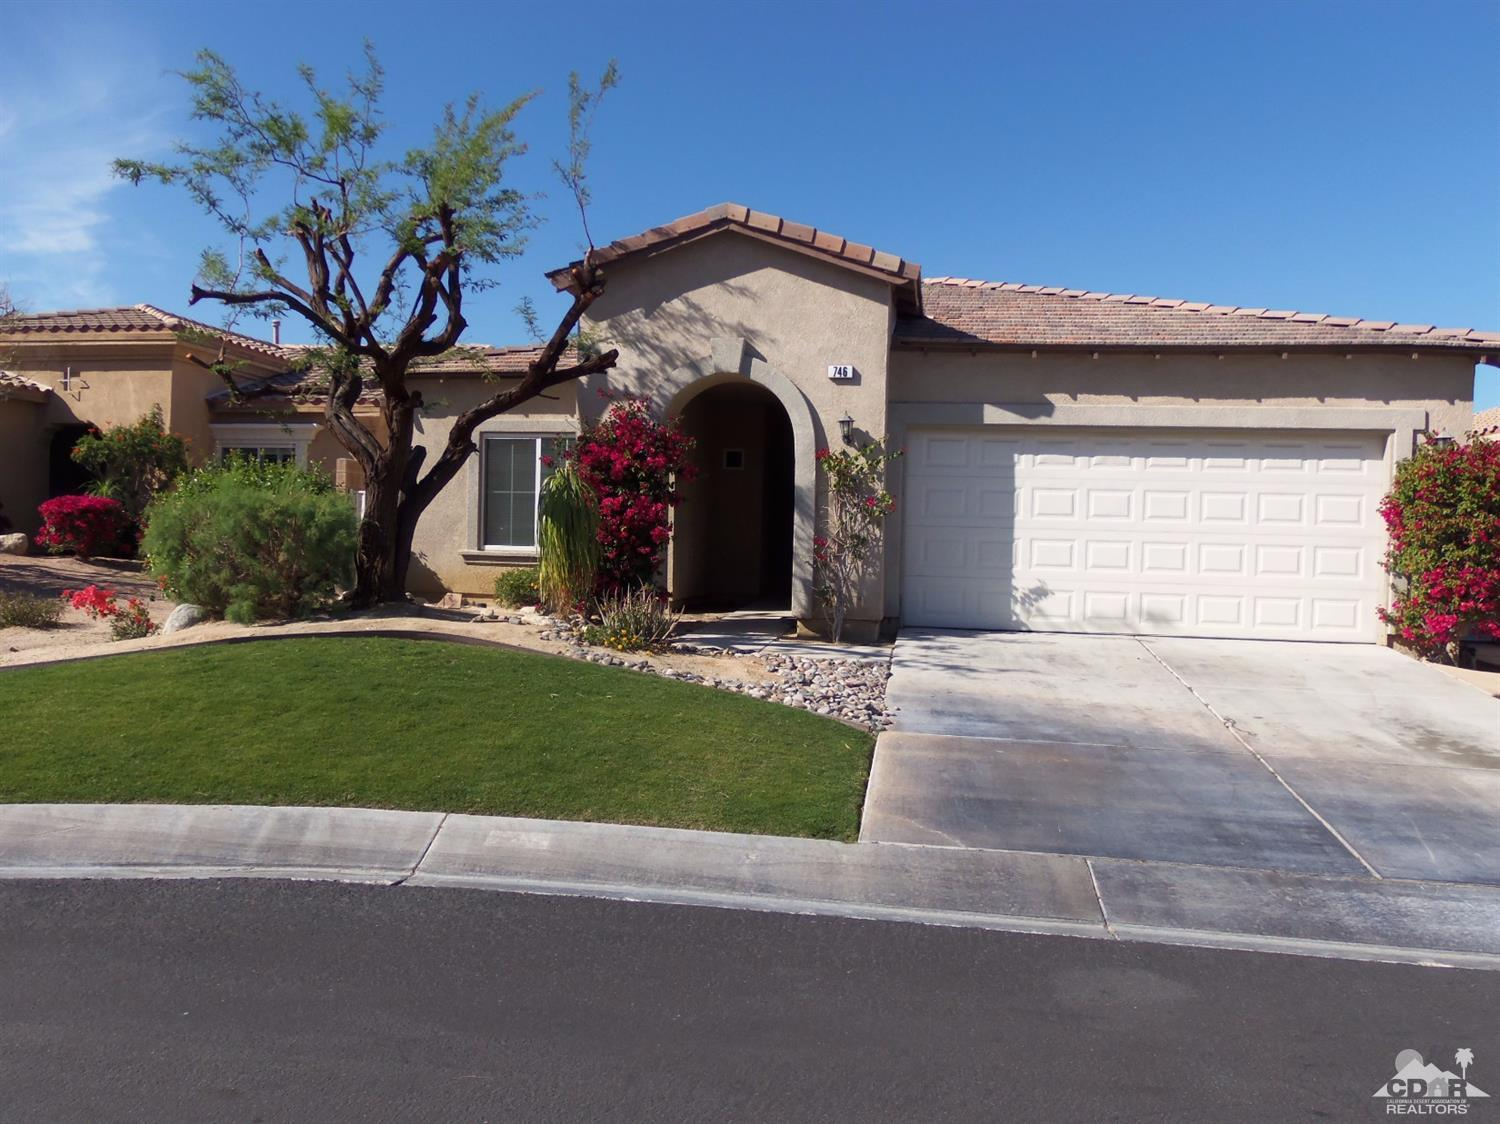 Palm springs homes for sale 250 000 to 500 000 for Palm spring houses for sale